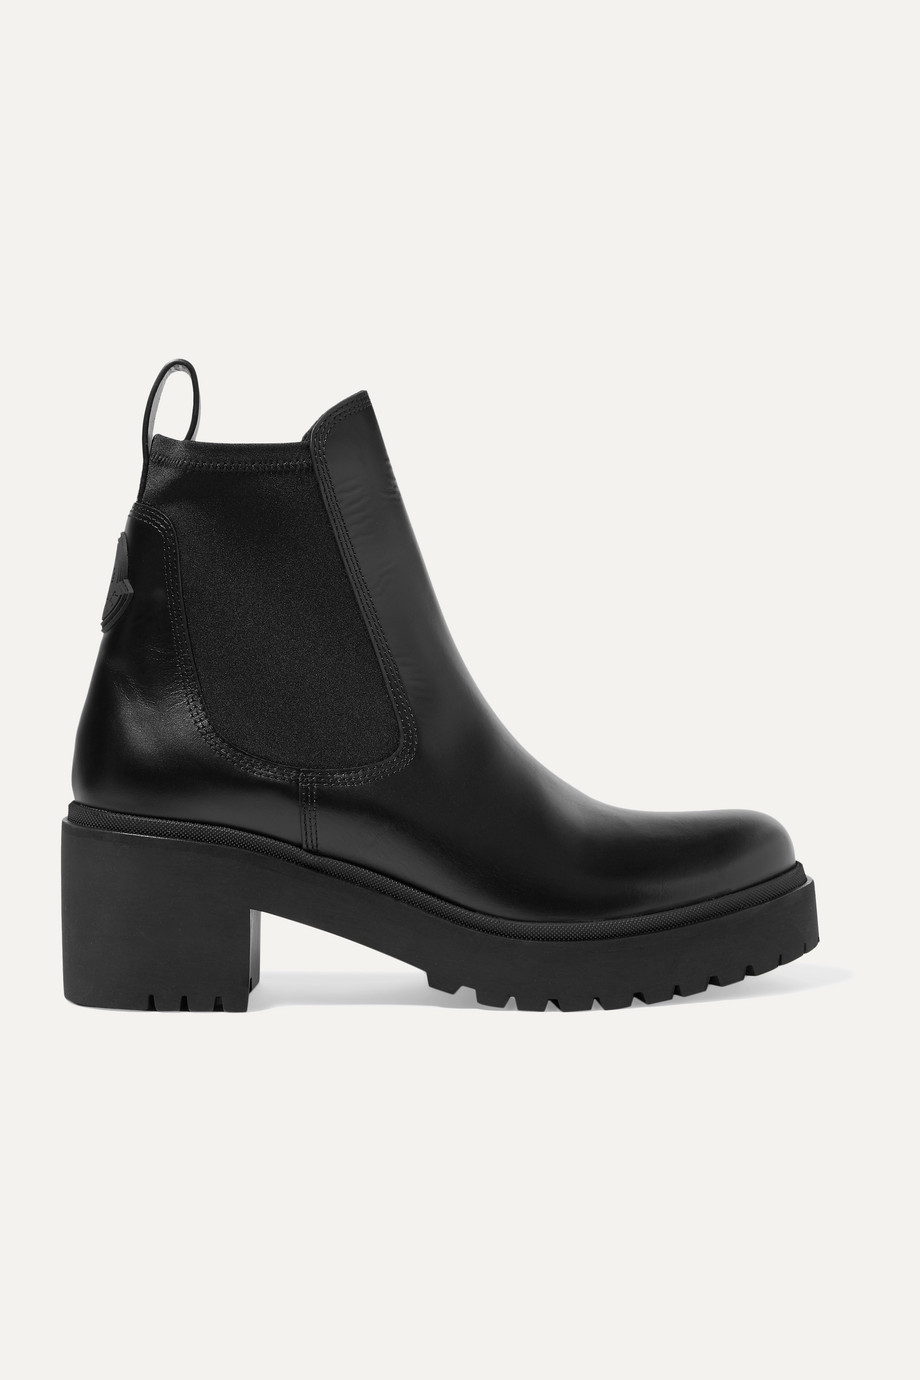 Moncler Vera leather Chelsea boots